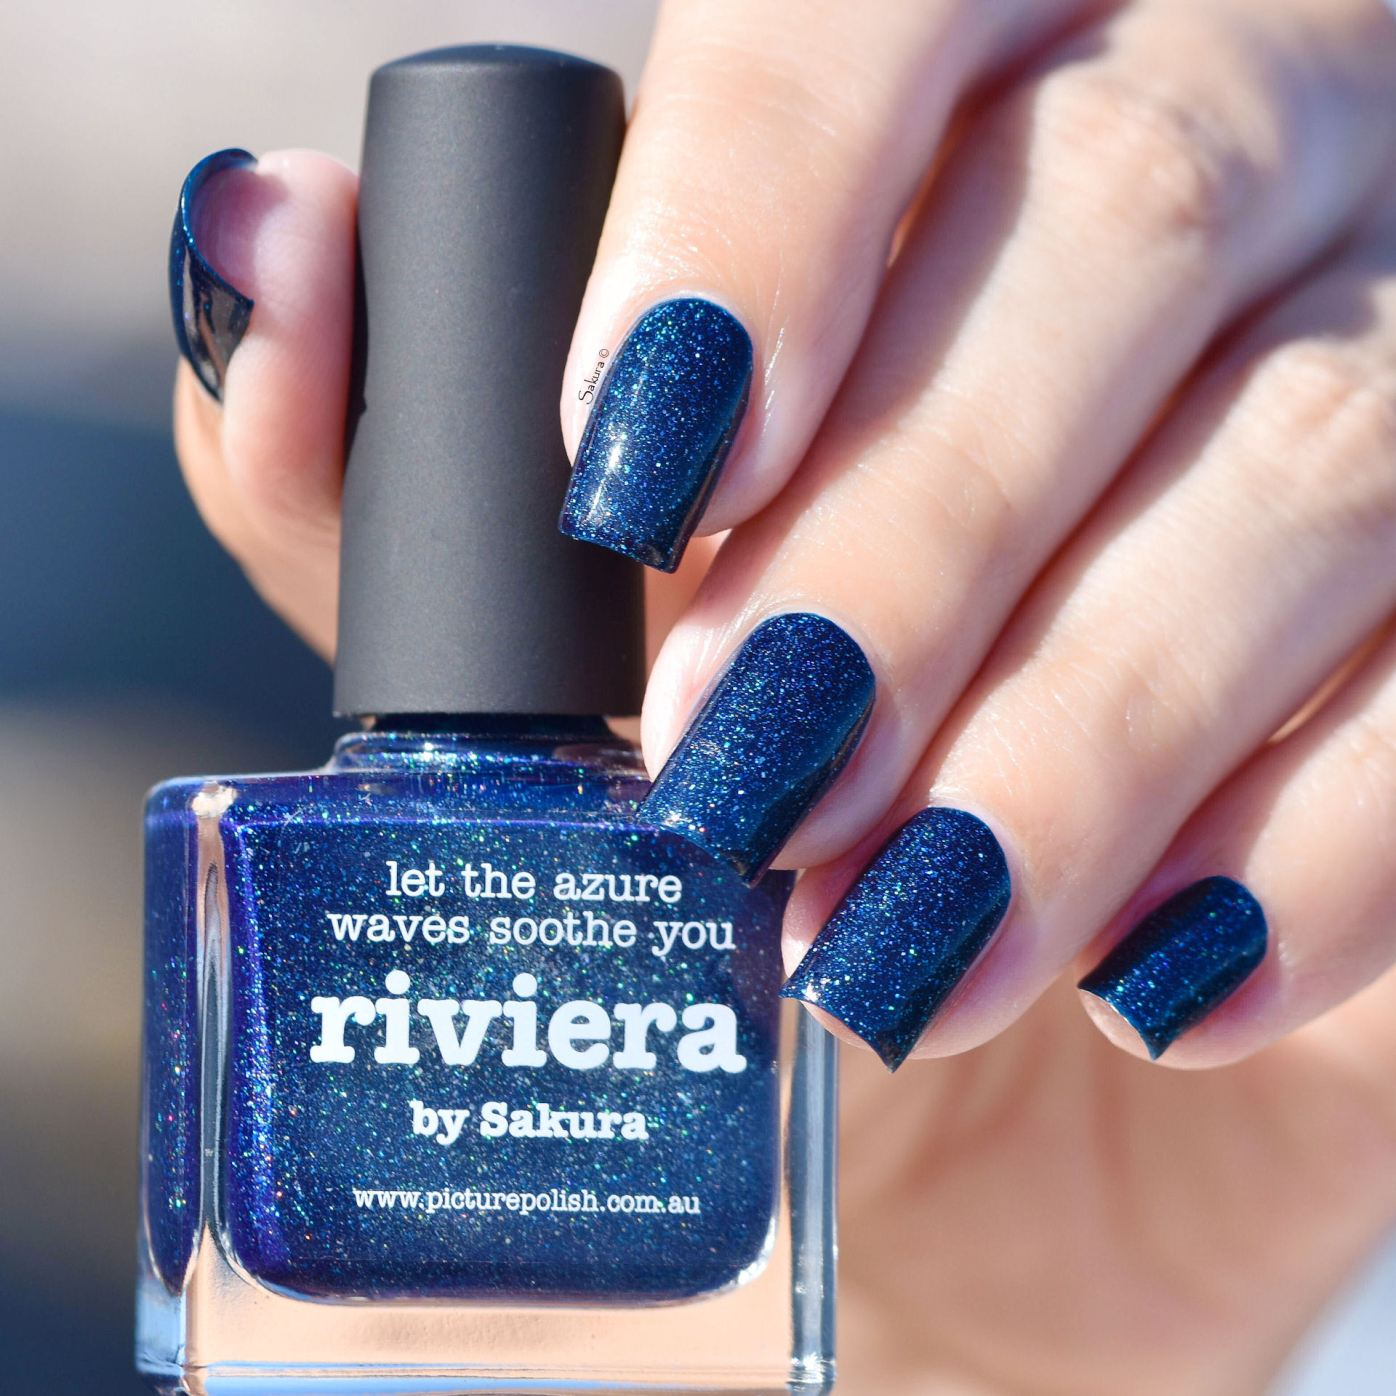 PICTURE POLISH EXT (1)